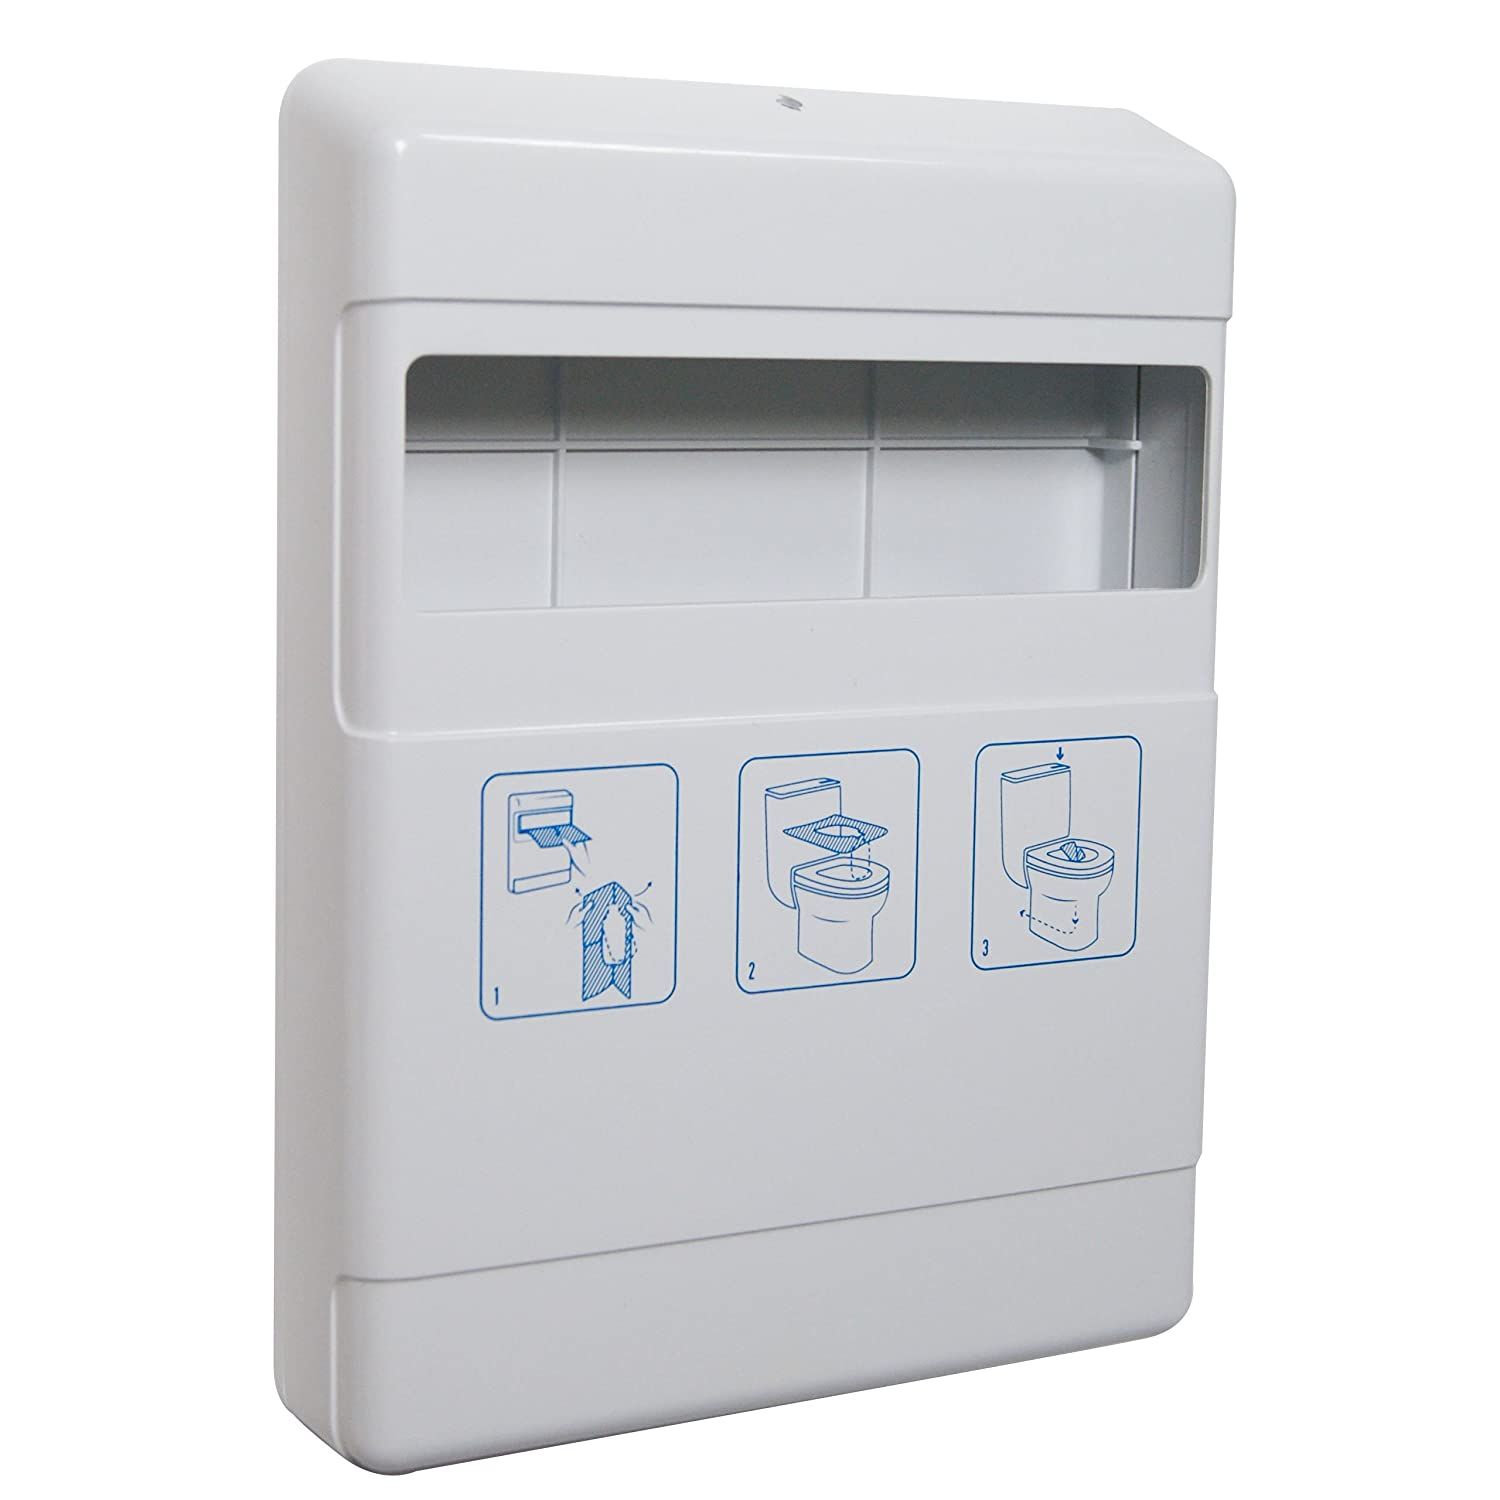 Washroom Hub Wall Mounted Toilet Seat Cover Dispenser White